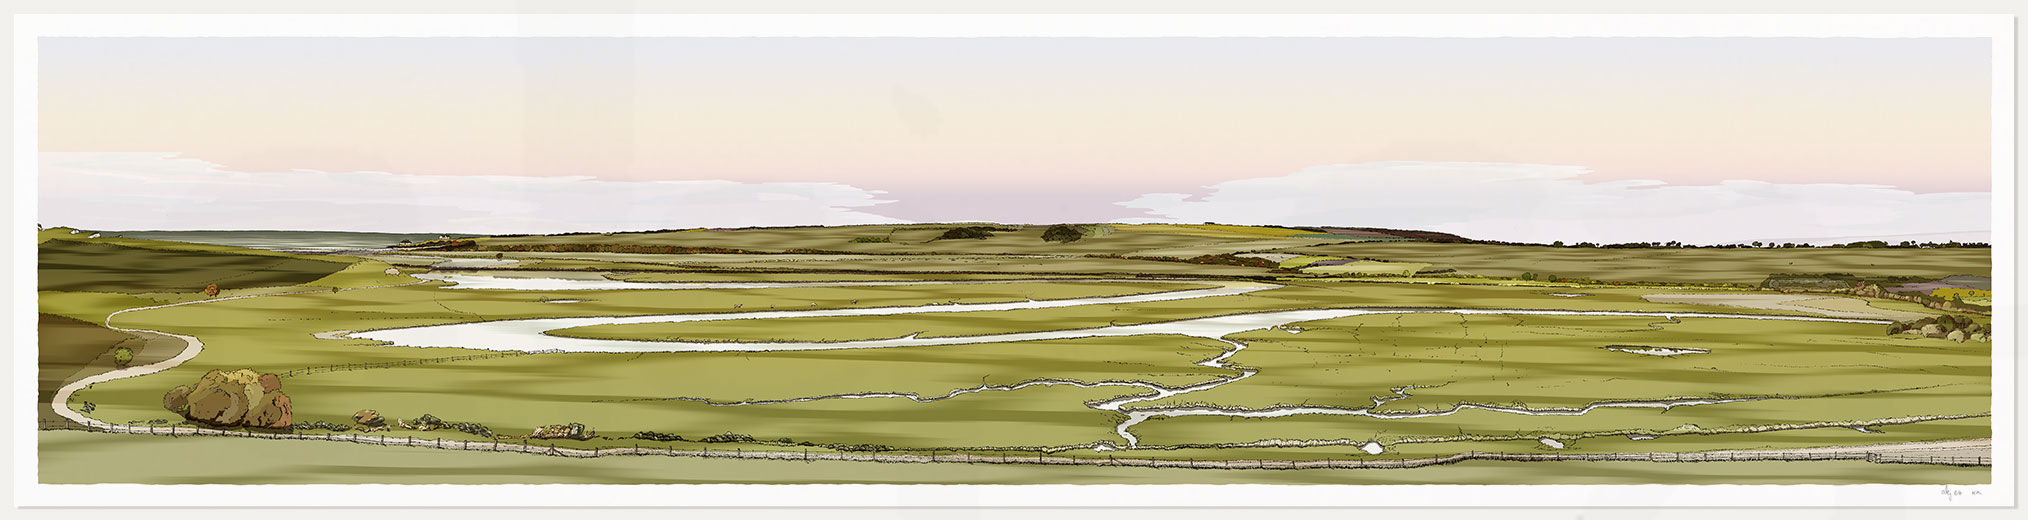 print named Cuckmere Haven Valley Eventide by artist alej ez